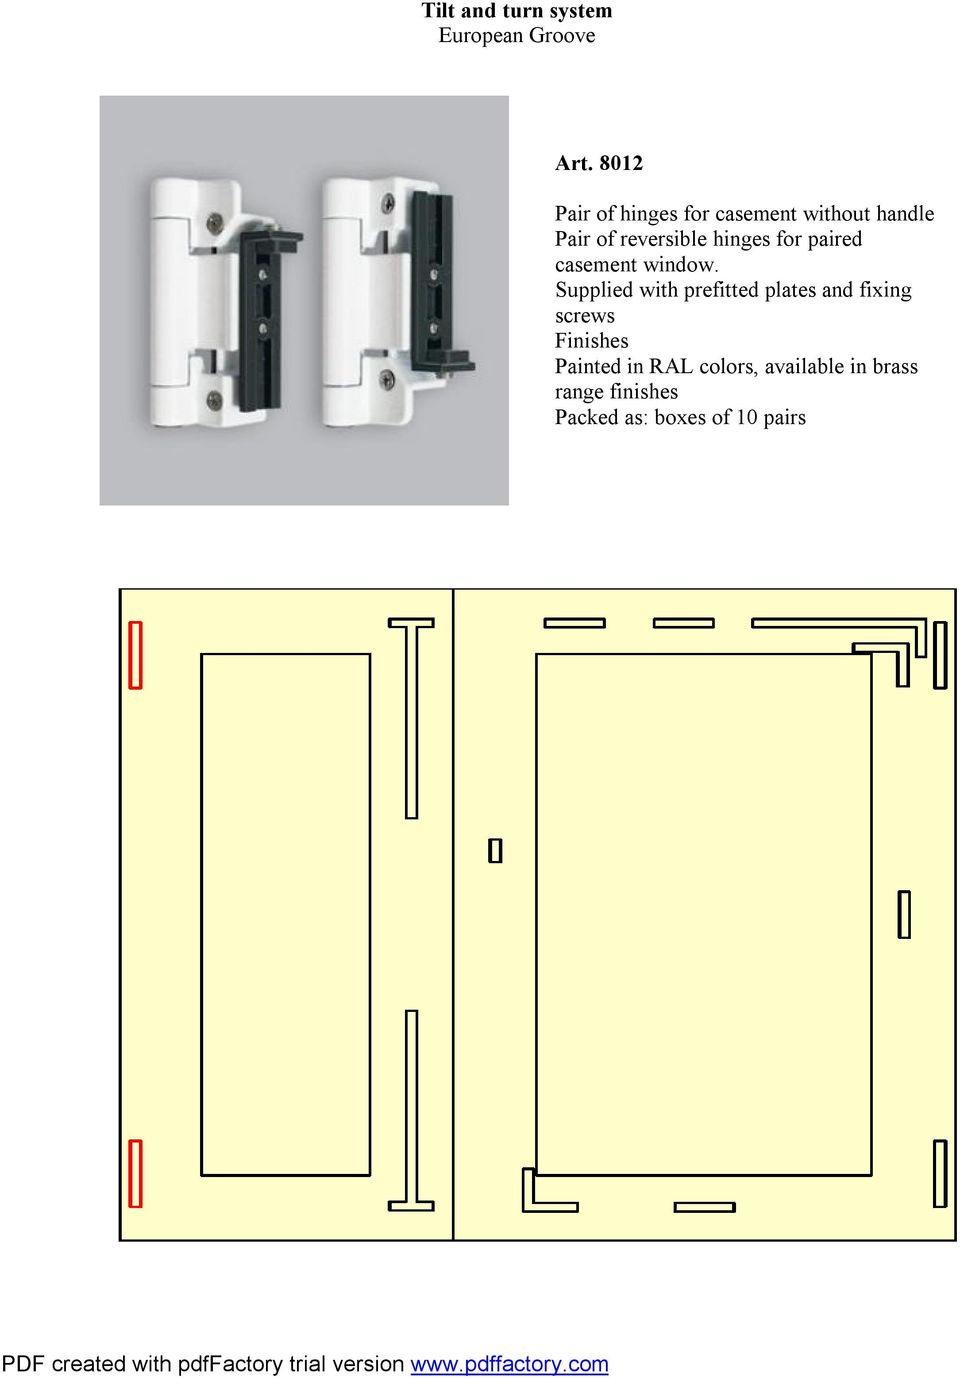 hinges for paired casement window.